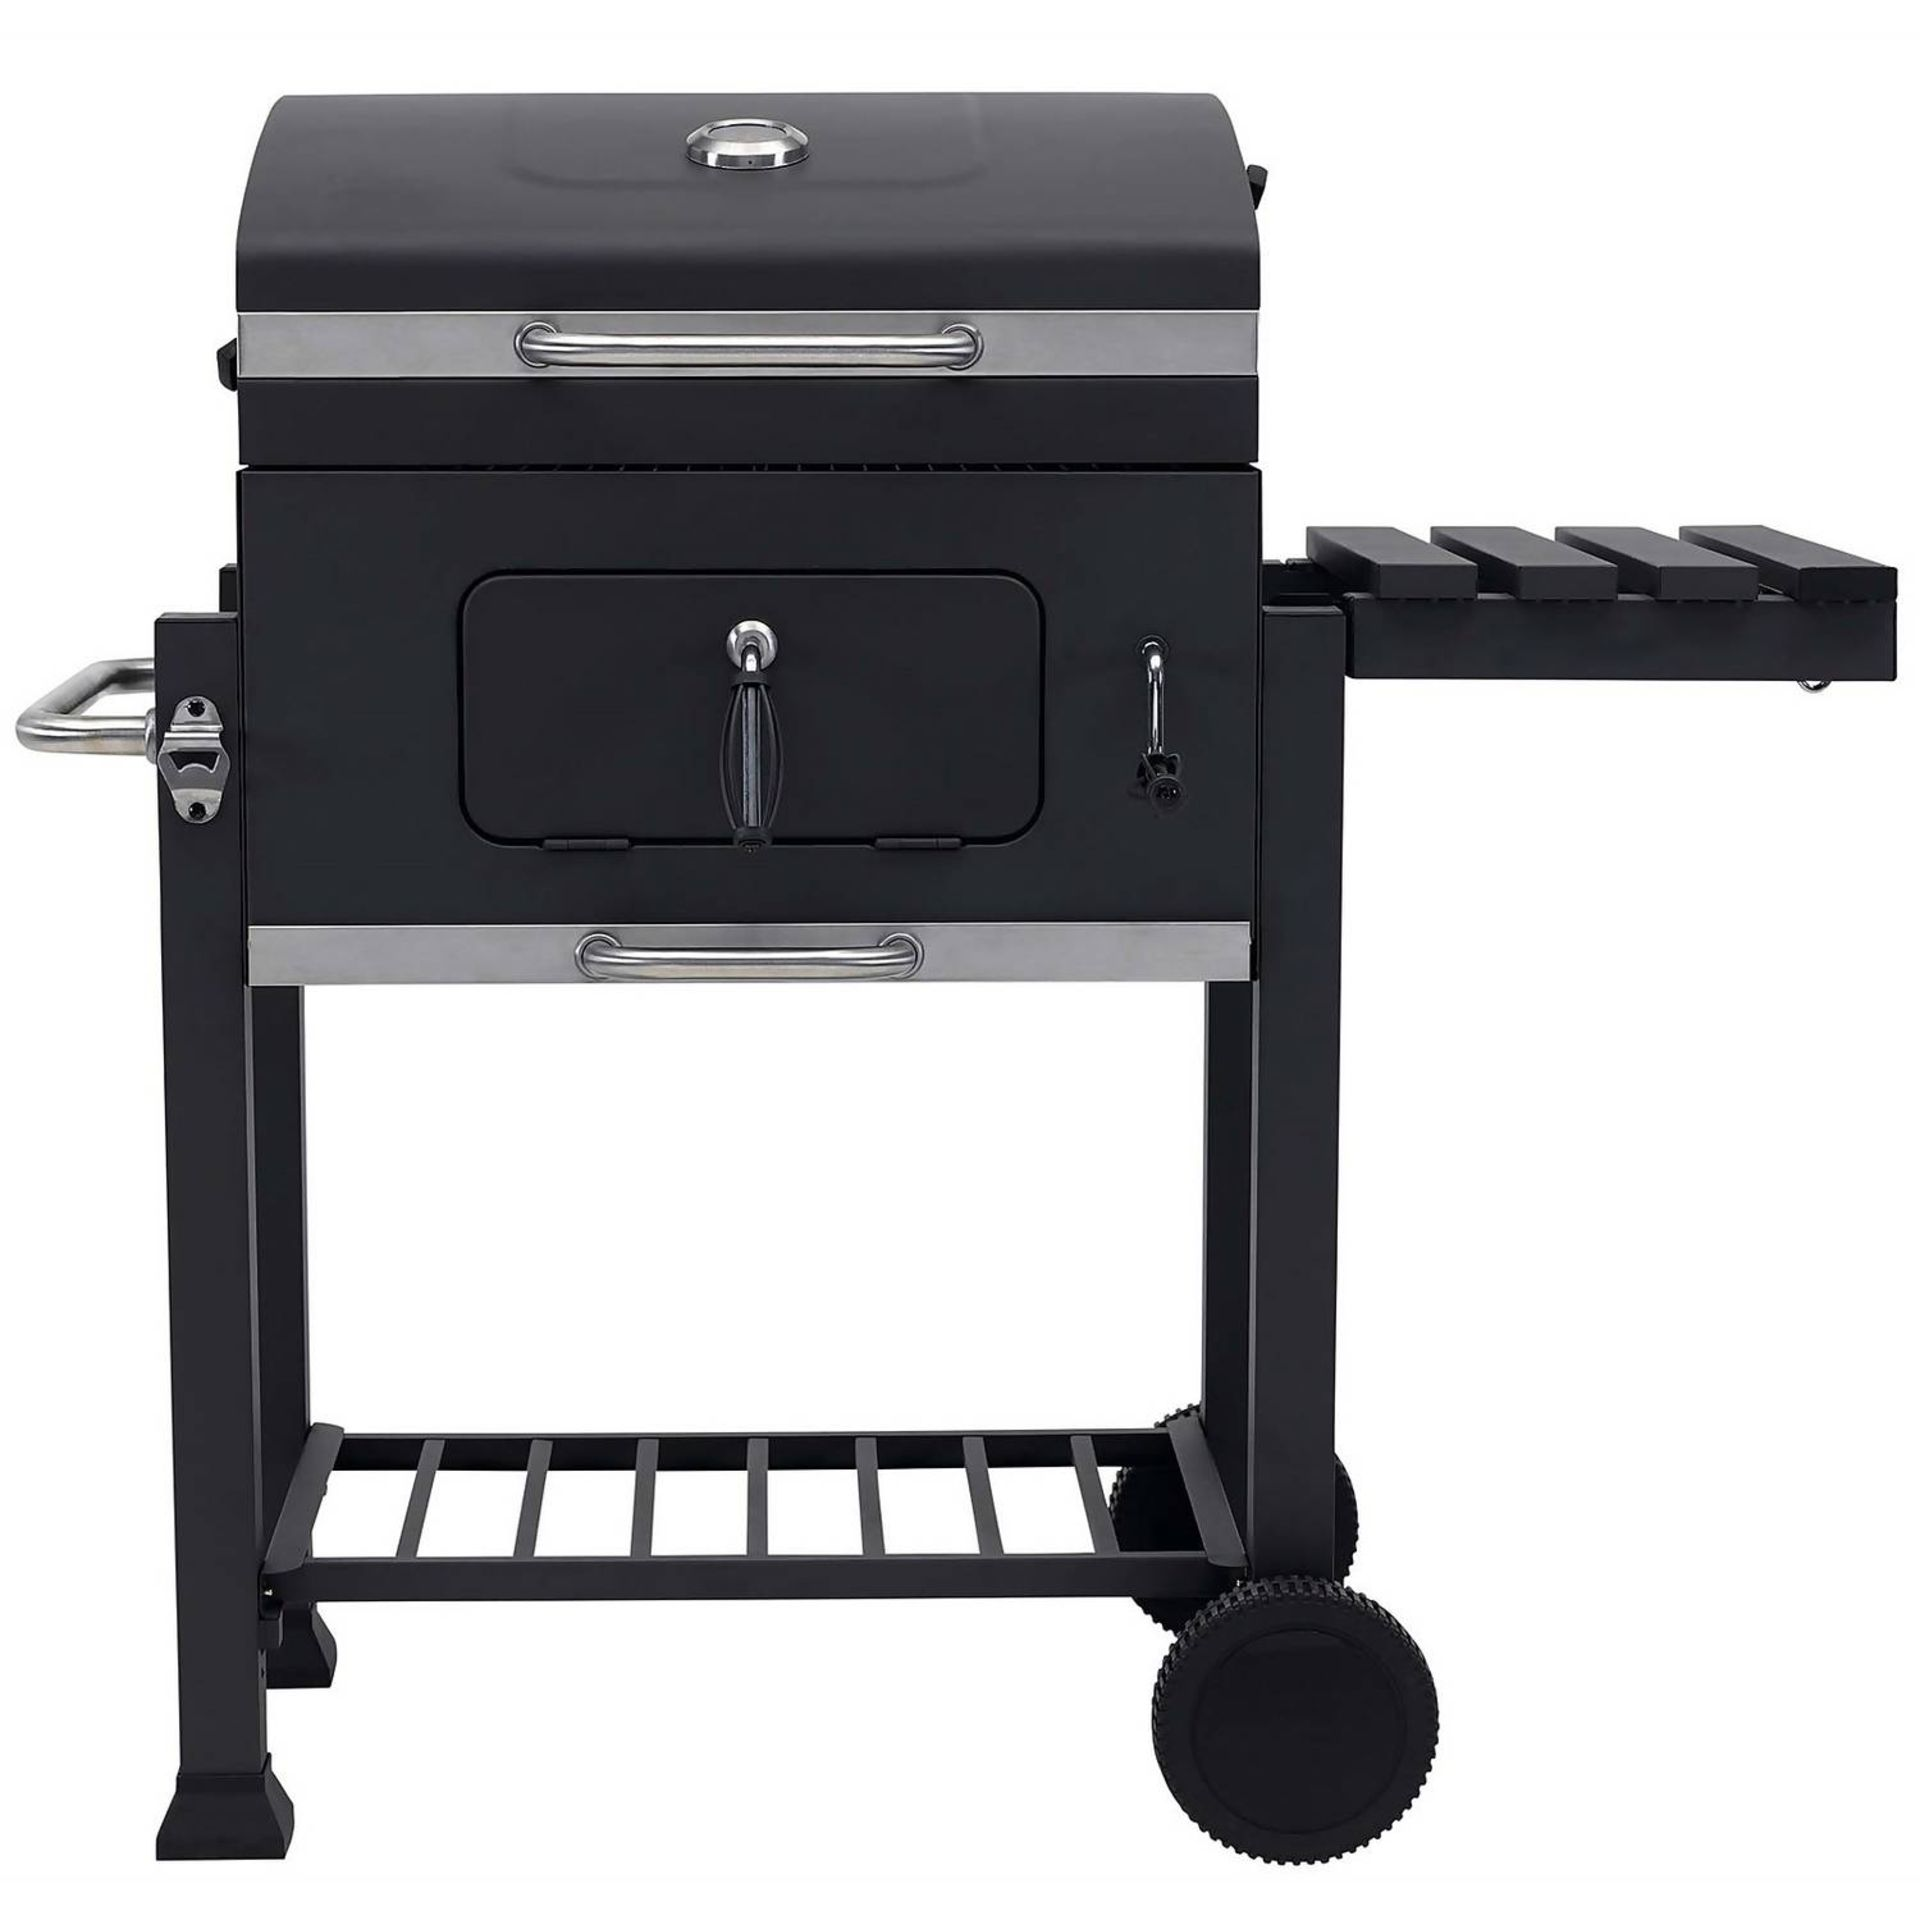 (P7) 1x Texas Franklin Charcoal BBQ RRP £75. (H107x W115x D67cm). Contents Appear As New – Not Prev - Image 2 of 5